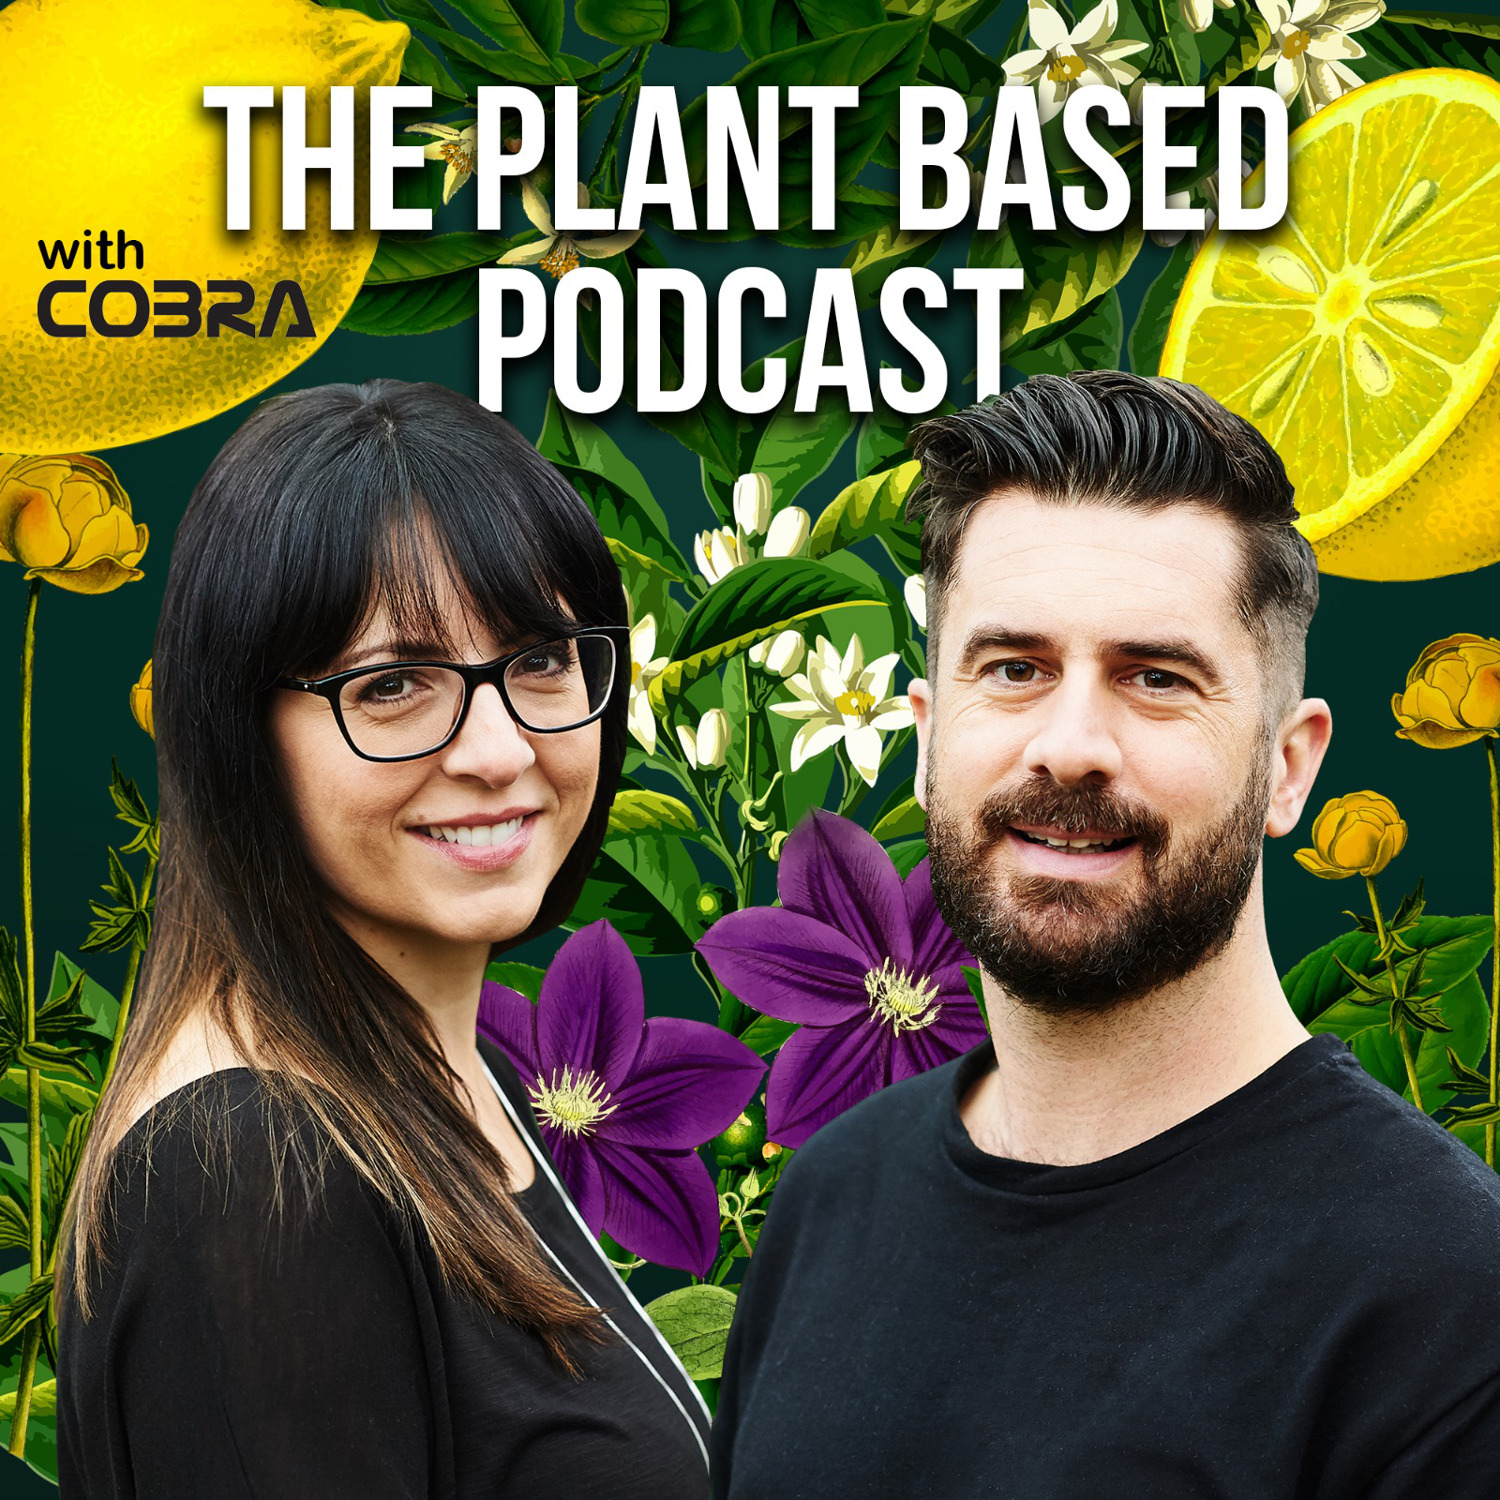 The Plant Based Podcast S4 - News 11/04/21